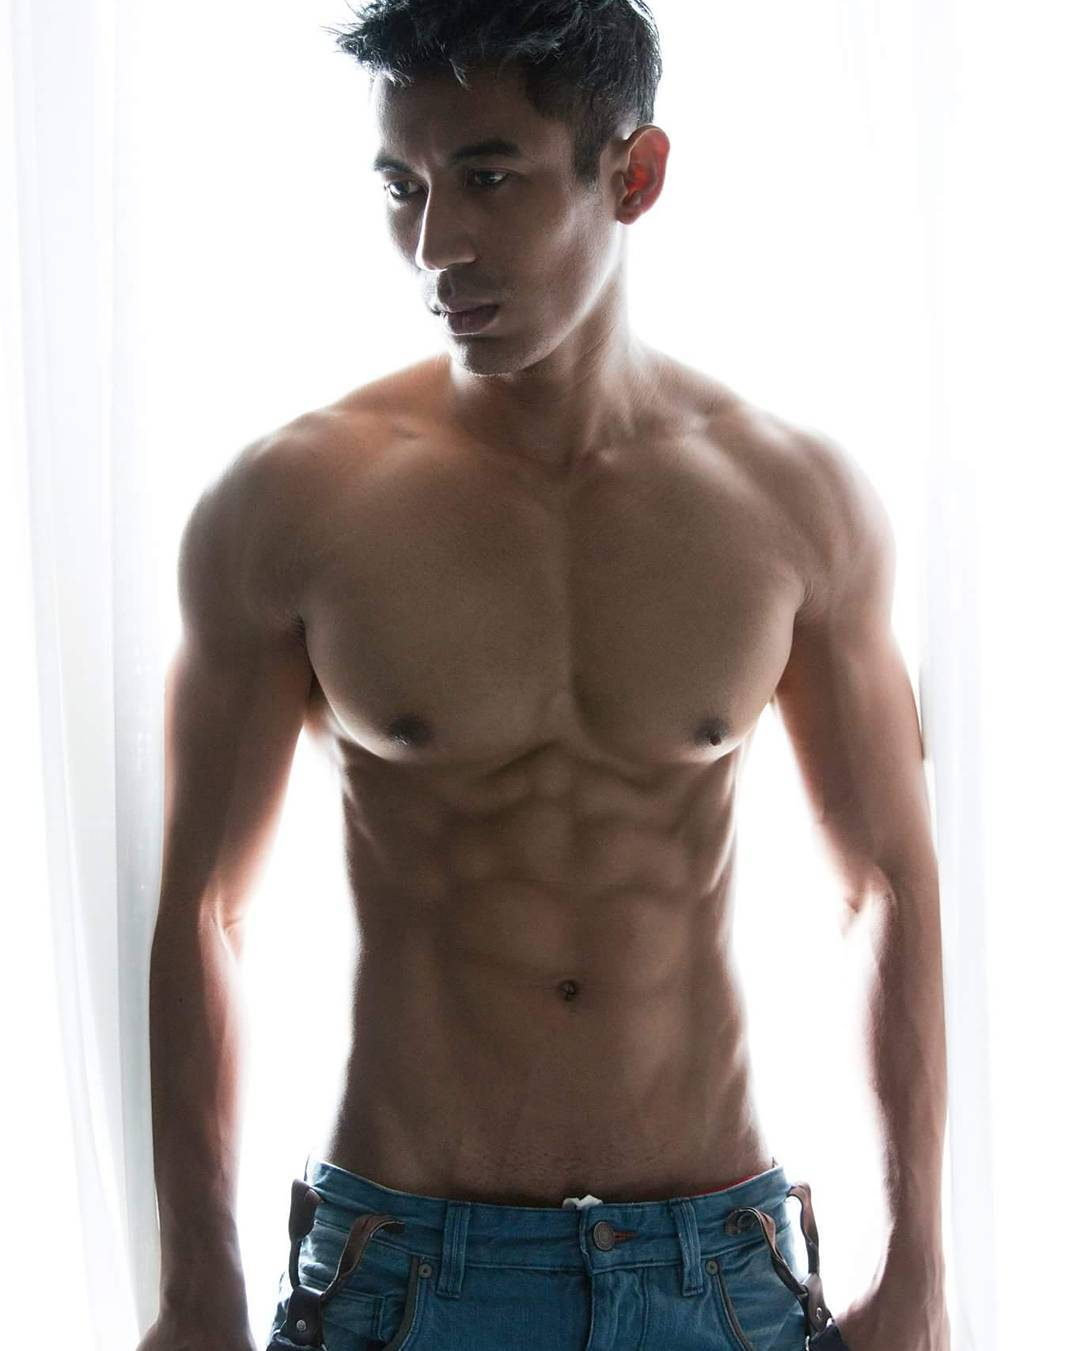 bachelor-of-the-week-from-manila-philippines-asias-largest-gay-travel-guide-for-gayparties-hotels-gay-bars-and-saunas-14